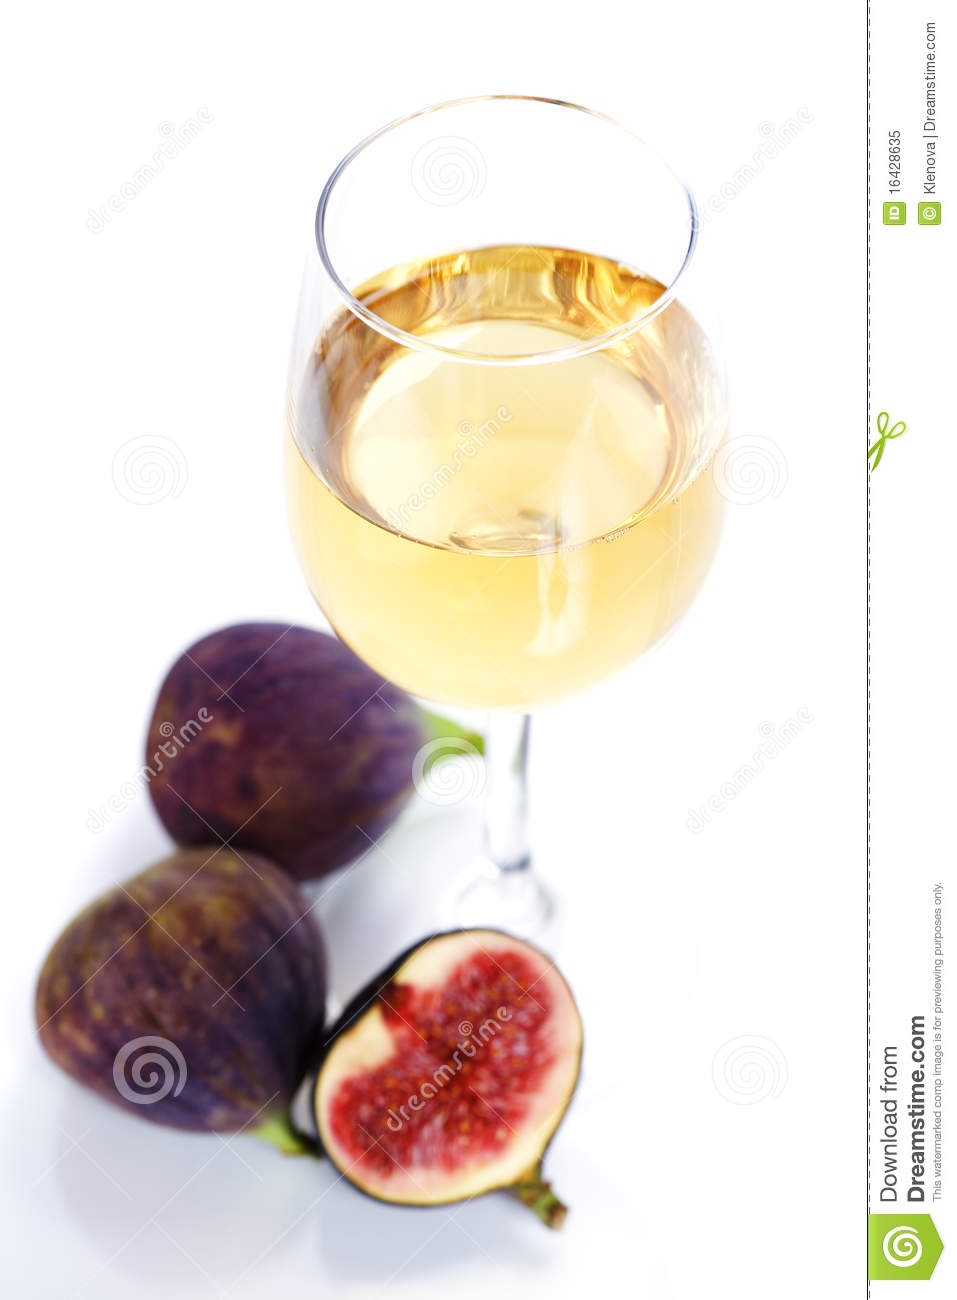 Fresh Figs And Wine Royalty Free Stock Photo - Image: 16428635